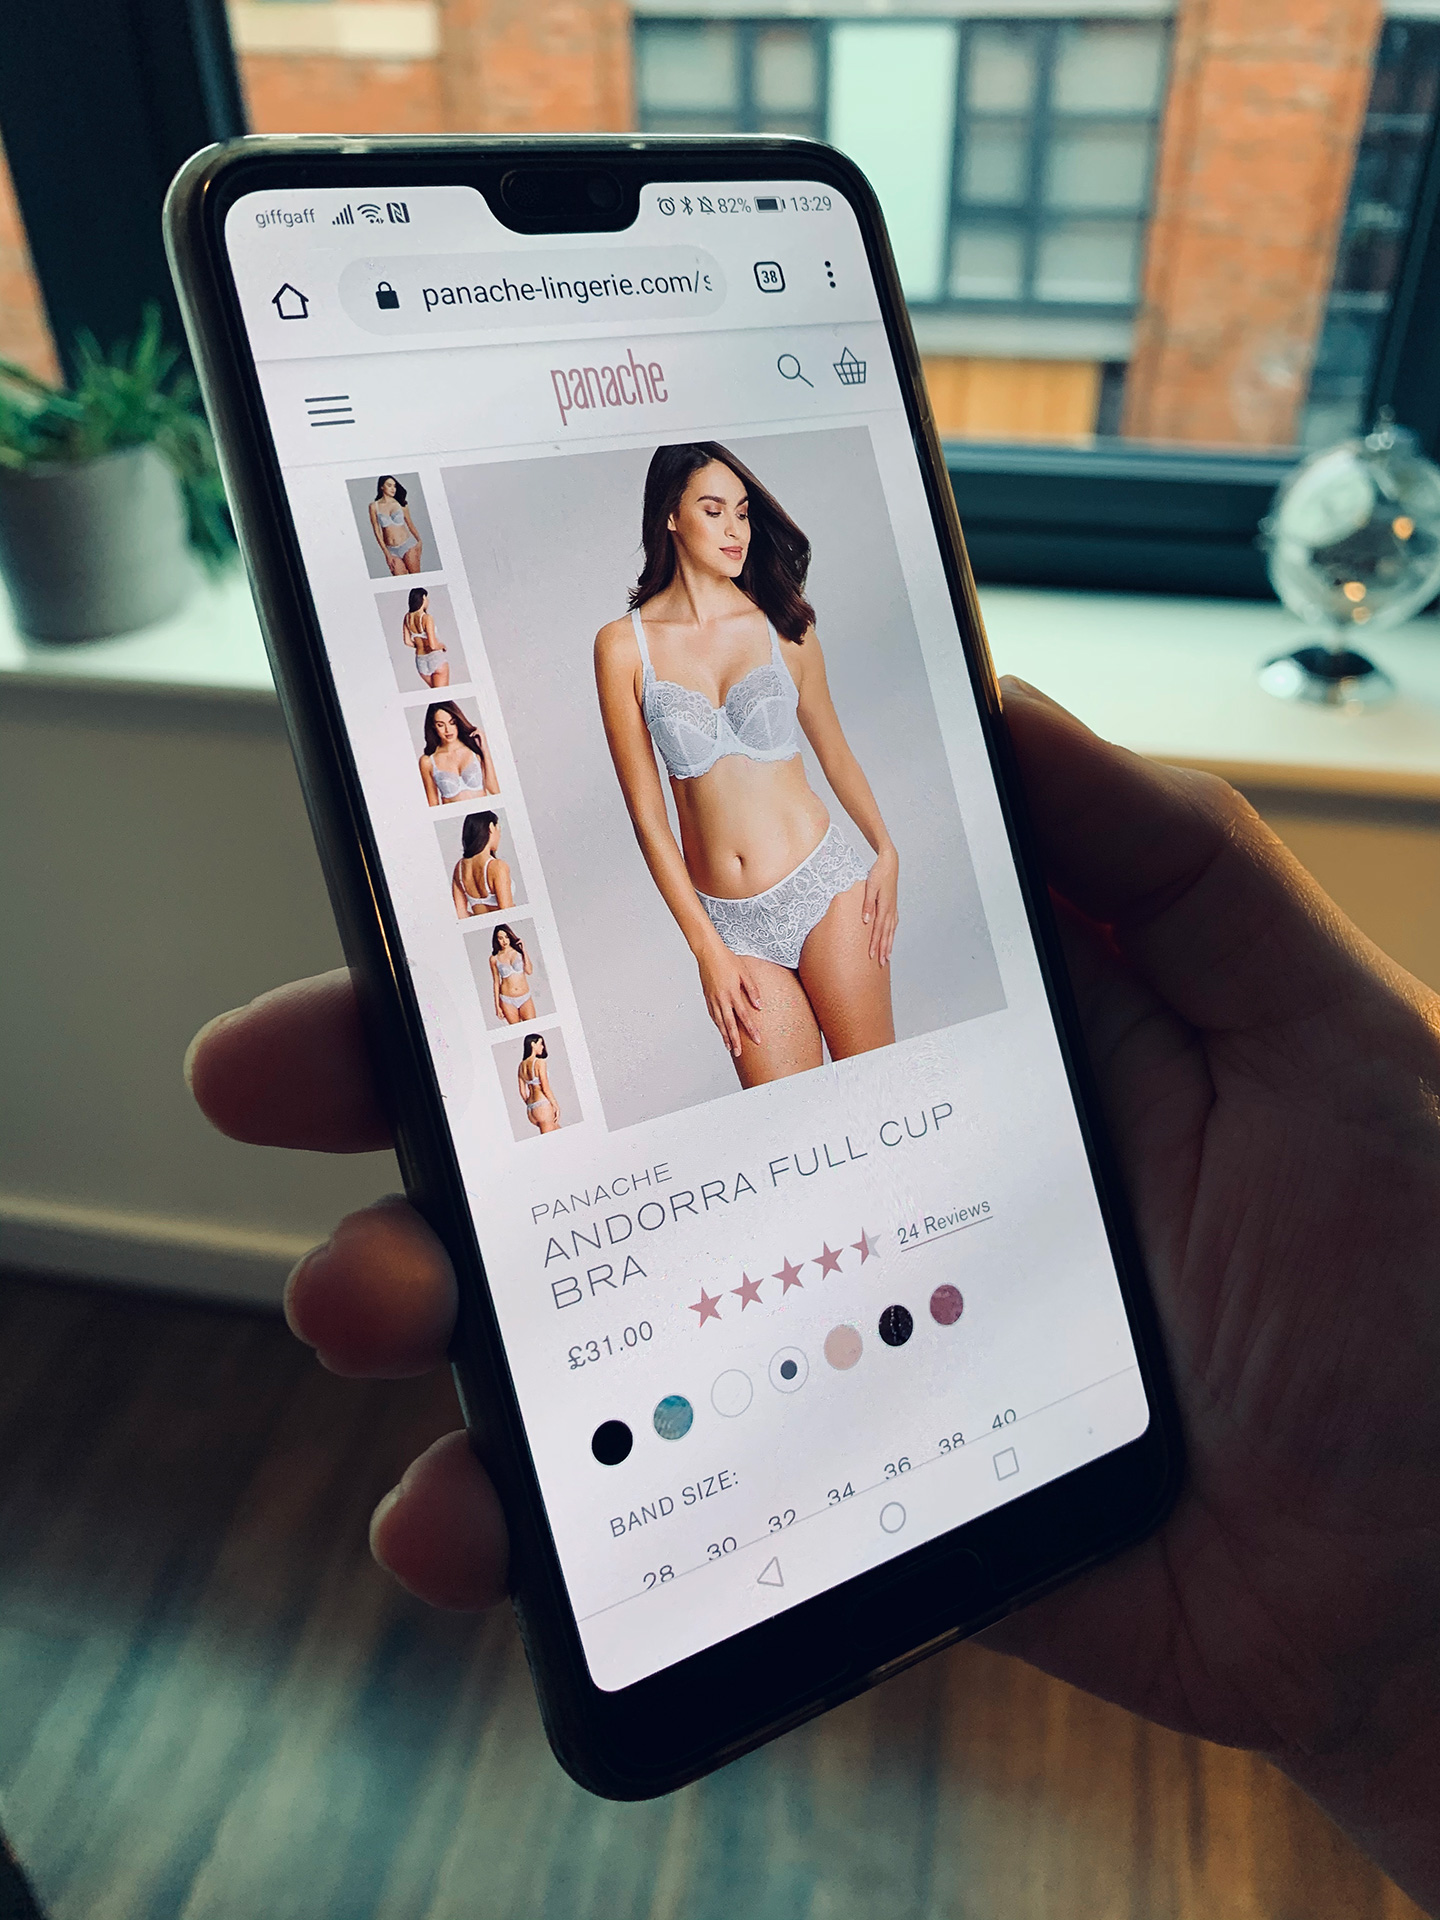 Panache Lingerie website on a smartphone